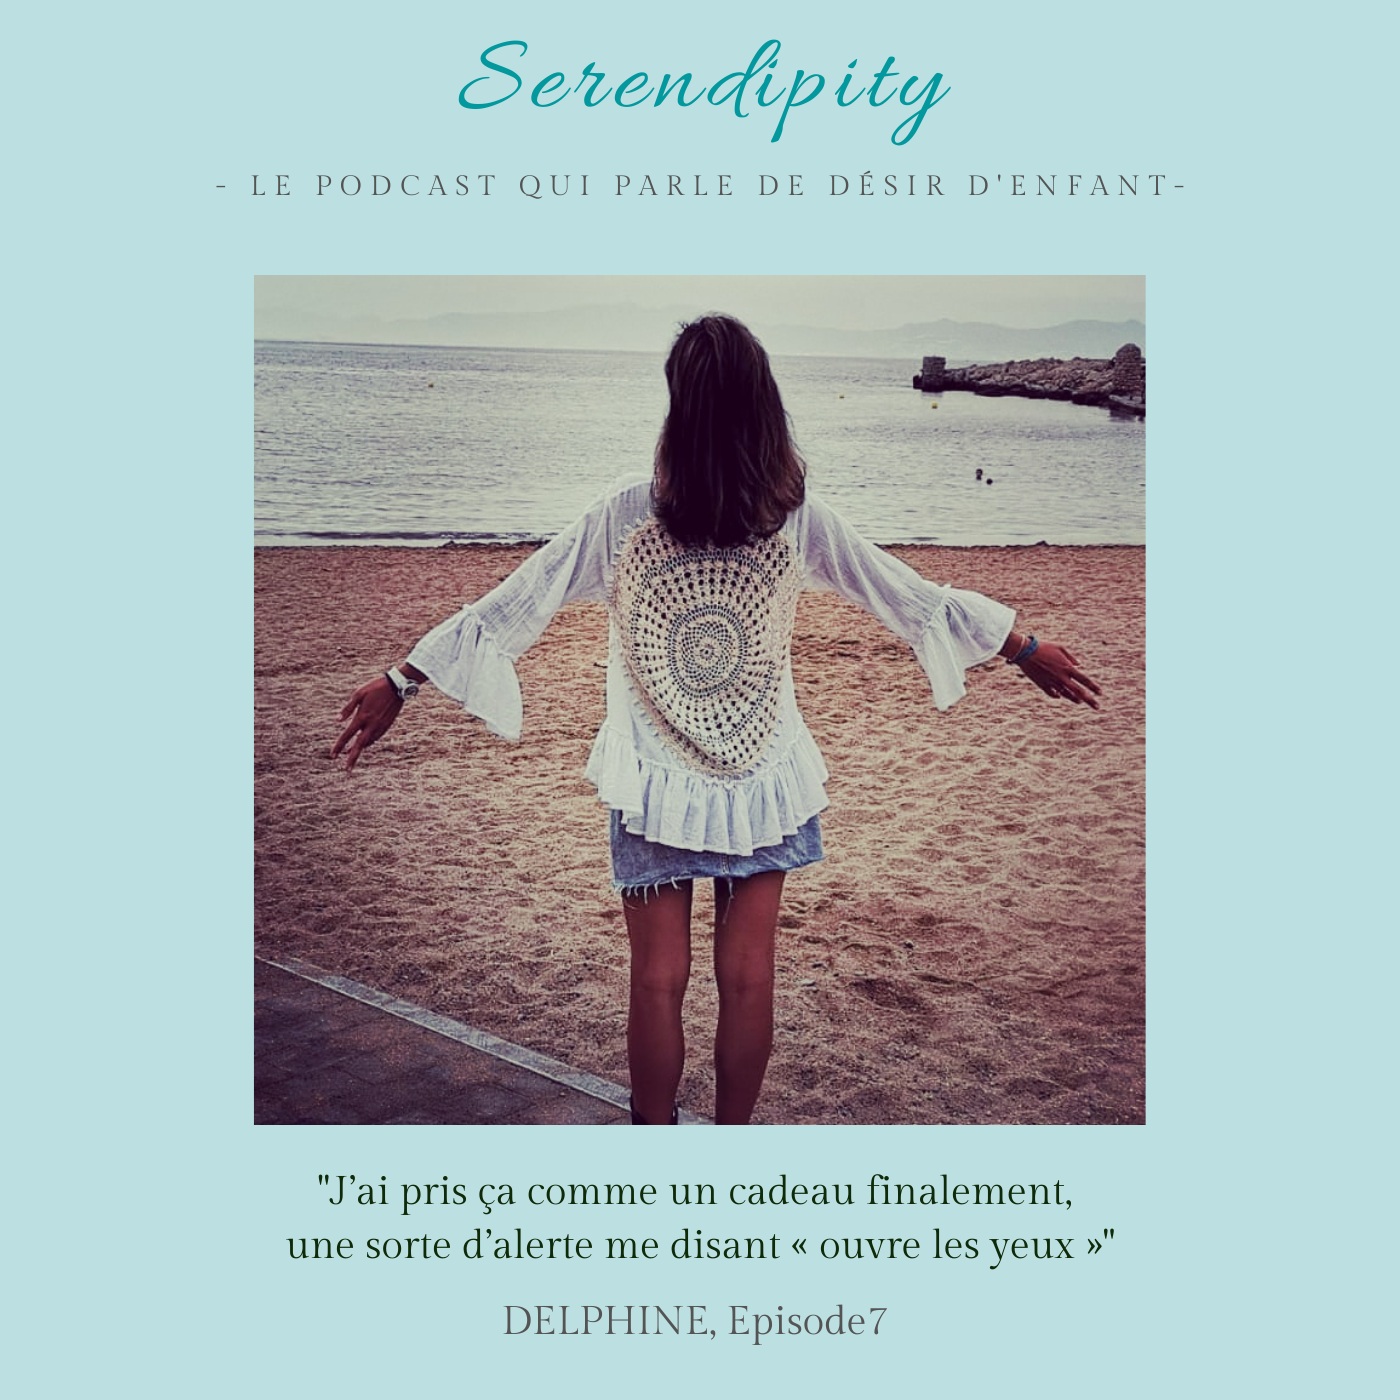 episode-7-serendipity-podcast-endometriose-lutenyl